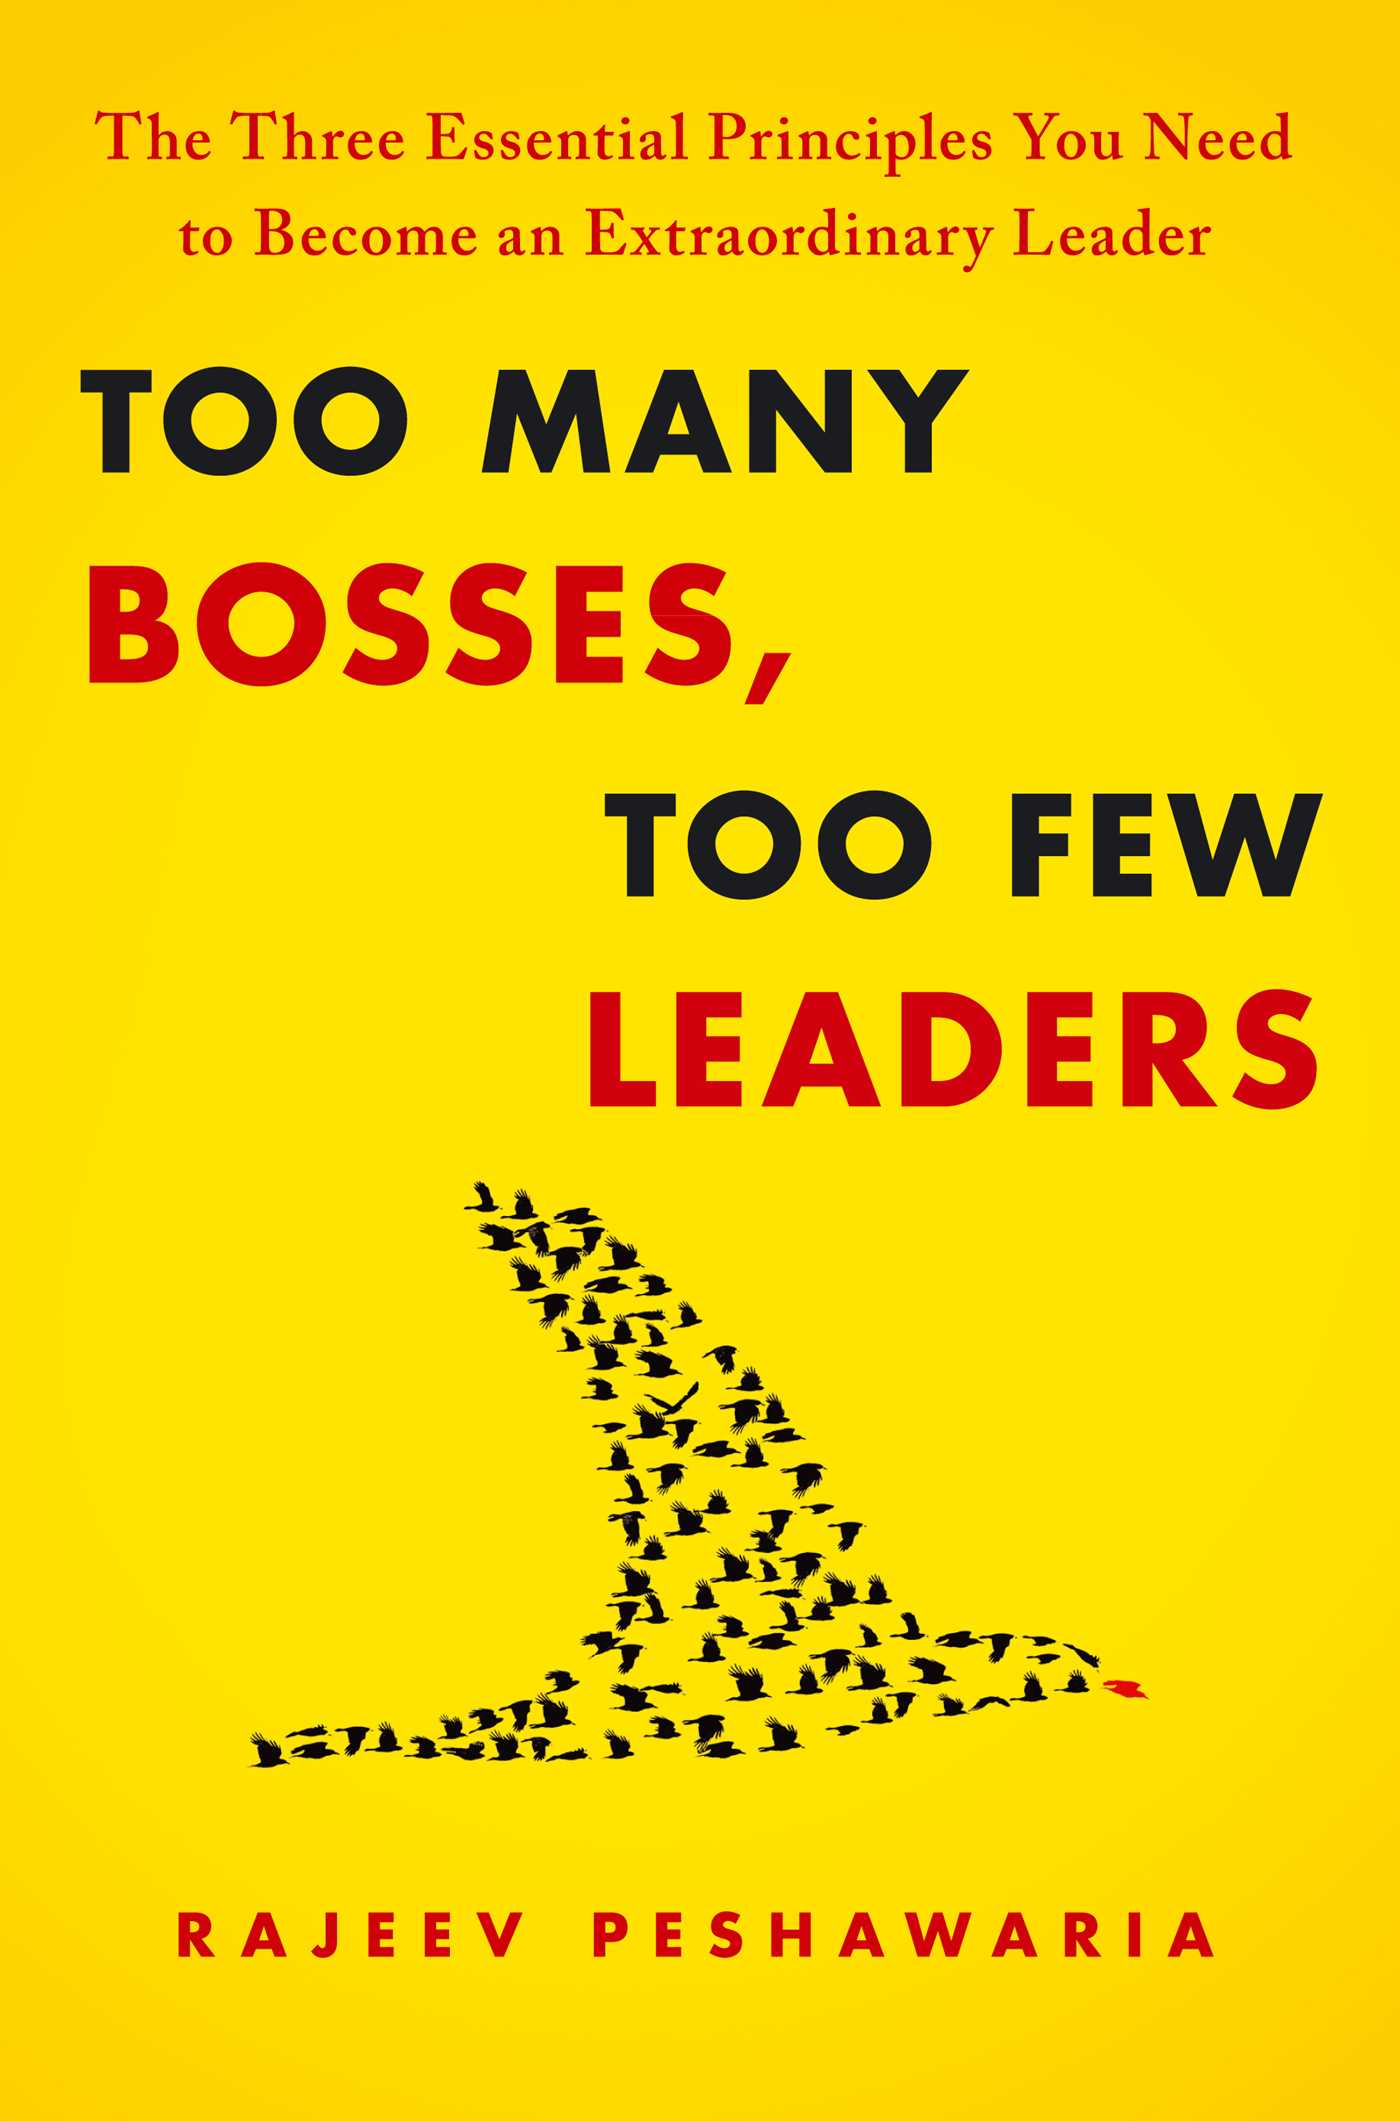 Too-many-bosses-too-few-leaders-9781439197769_hr